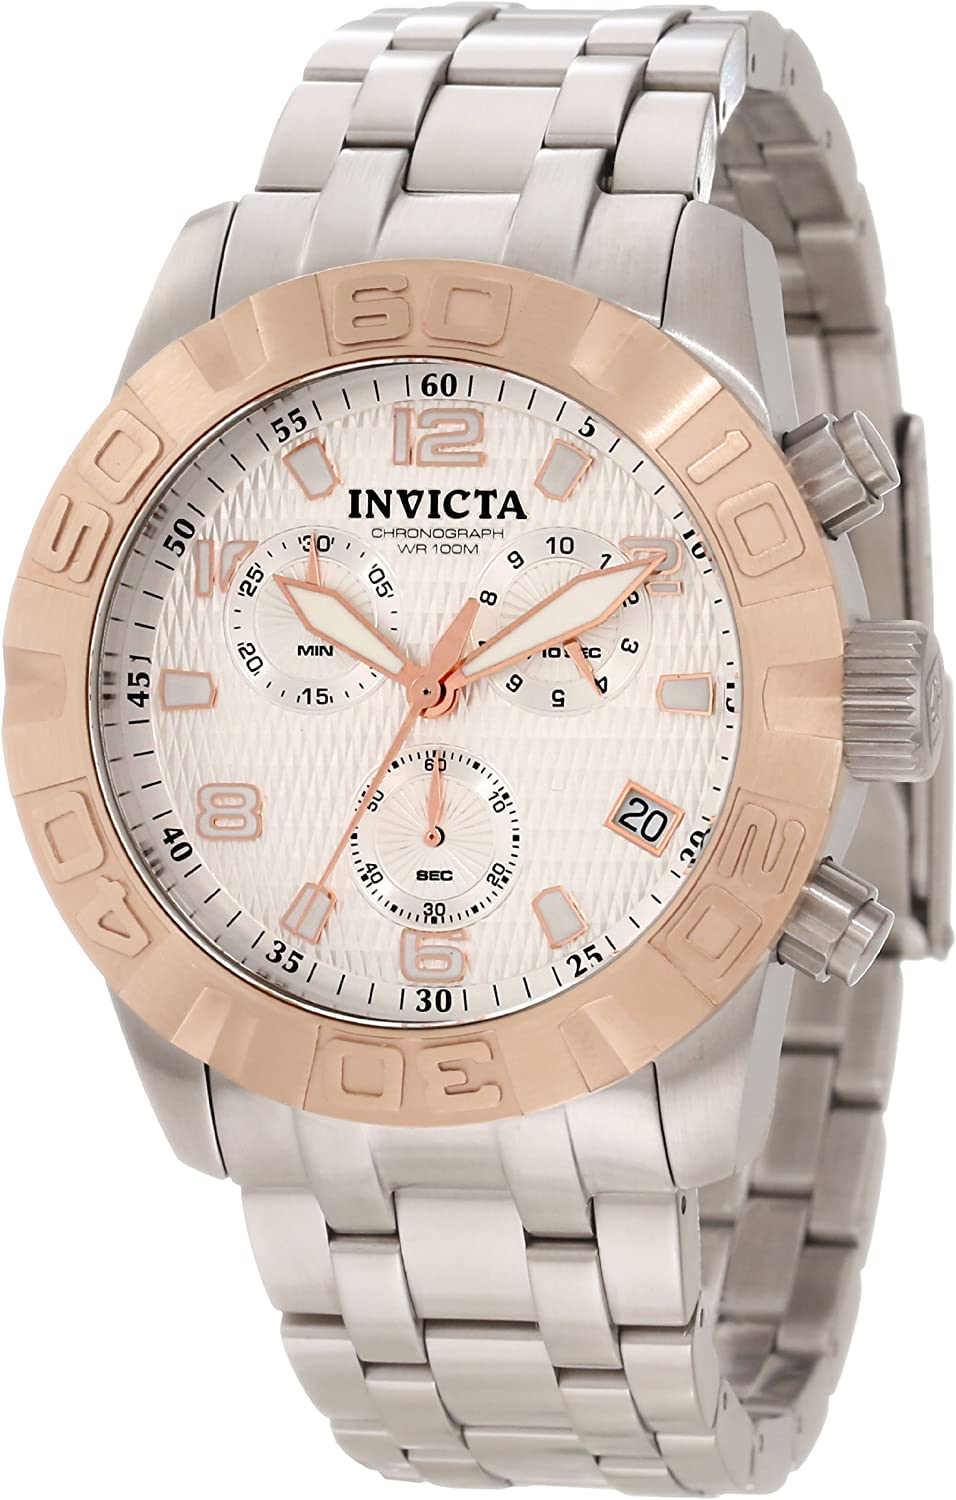 Invicta Men s 11451 Pro Diver Chronograph Silver Textured Dial Stainless Steel Watch